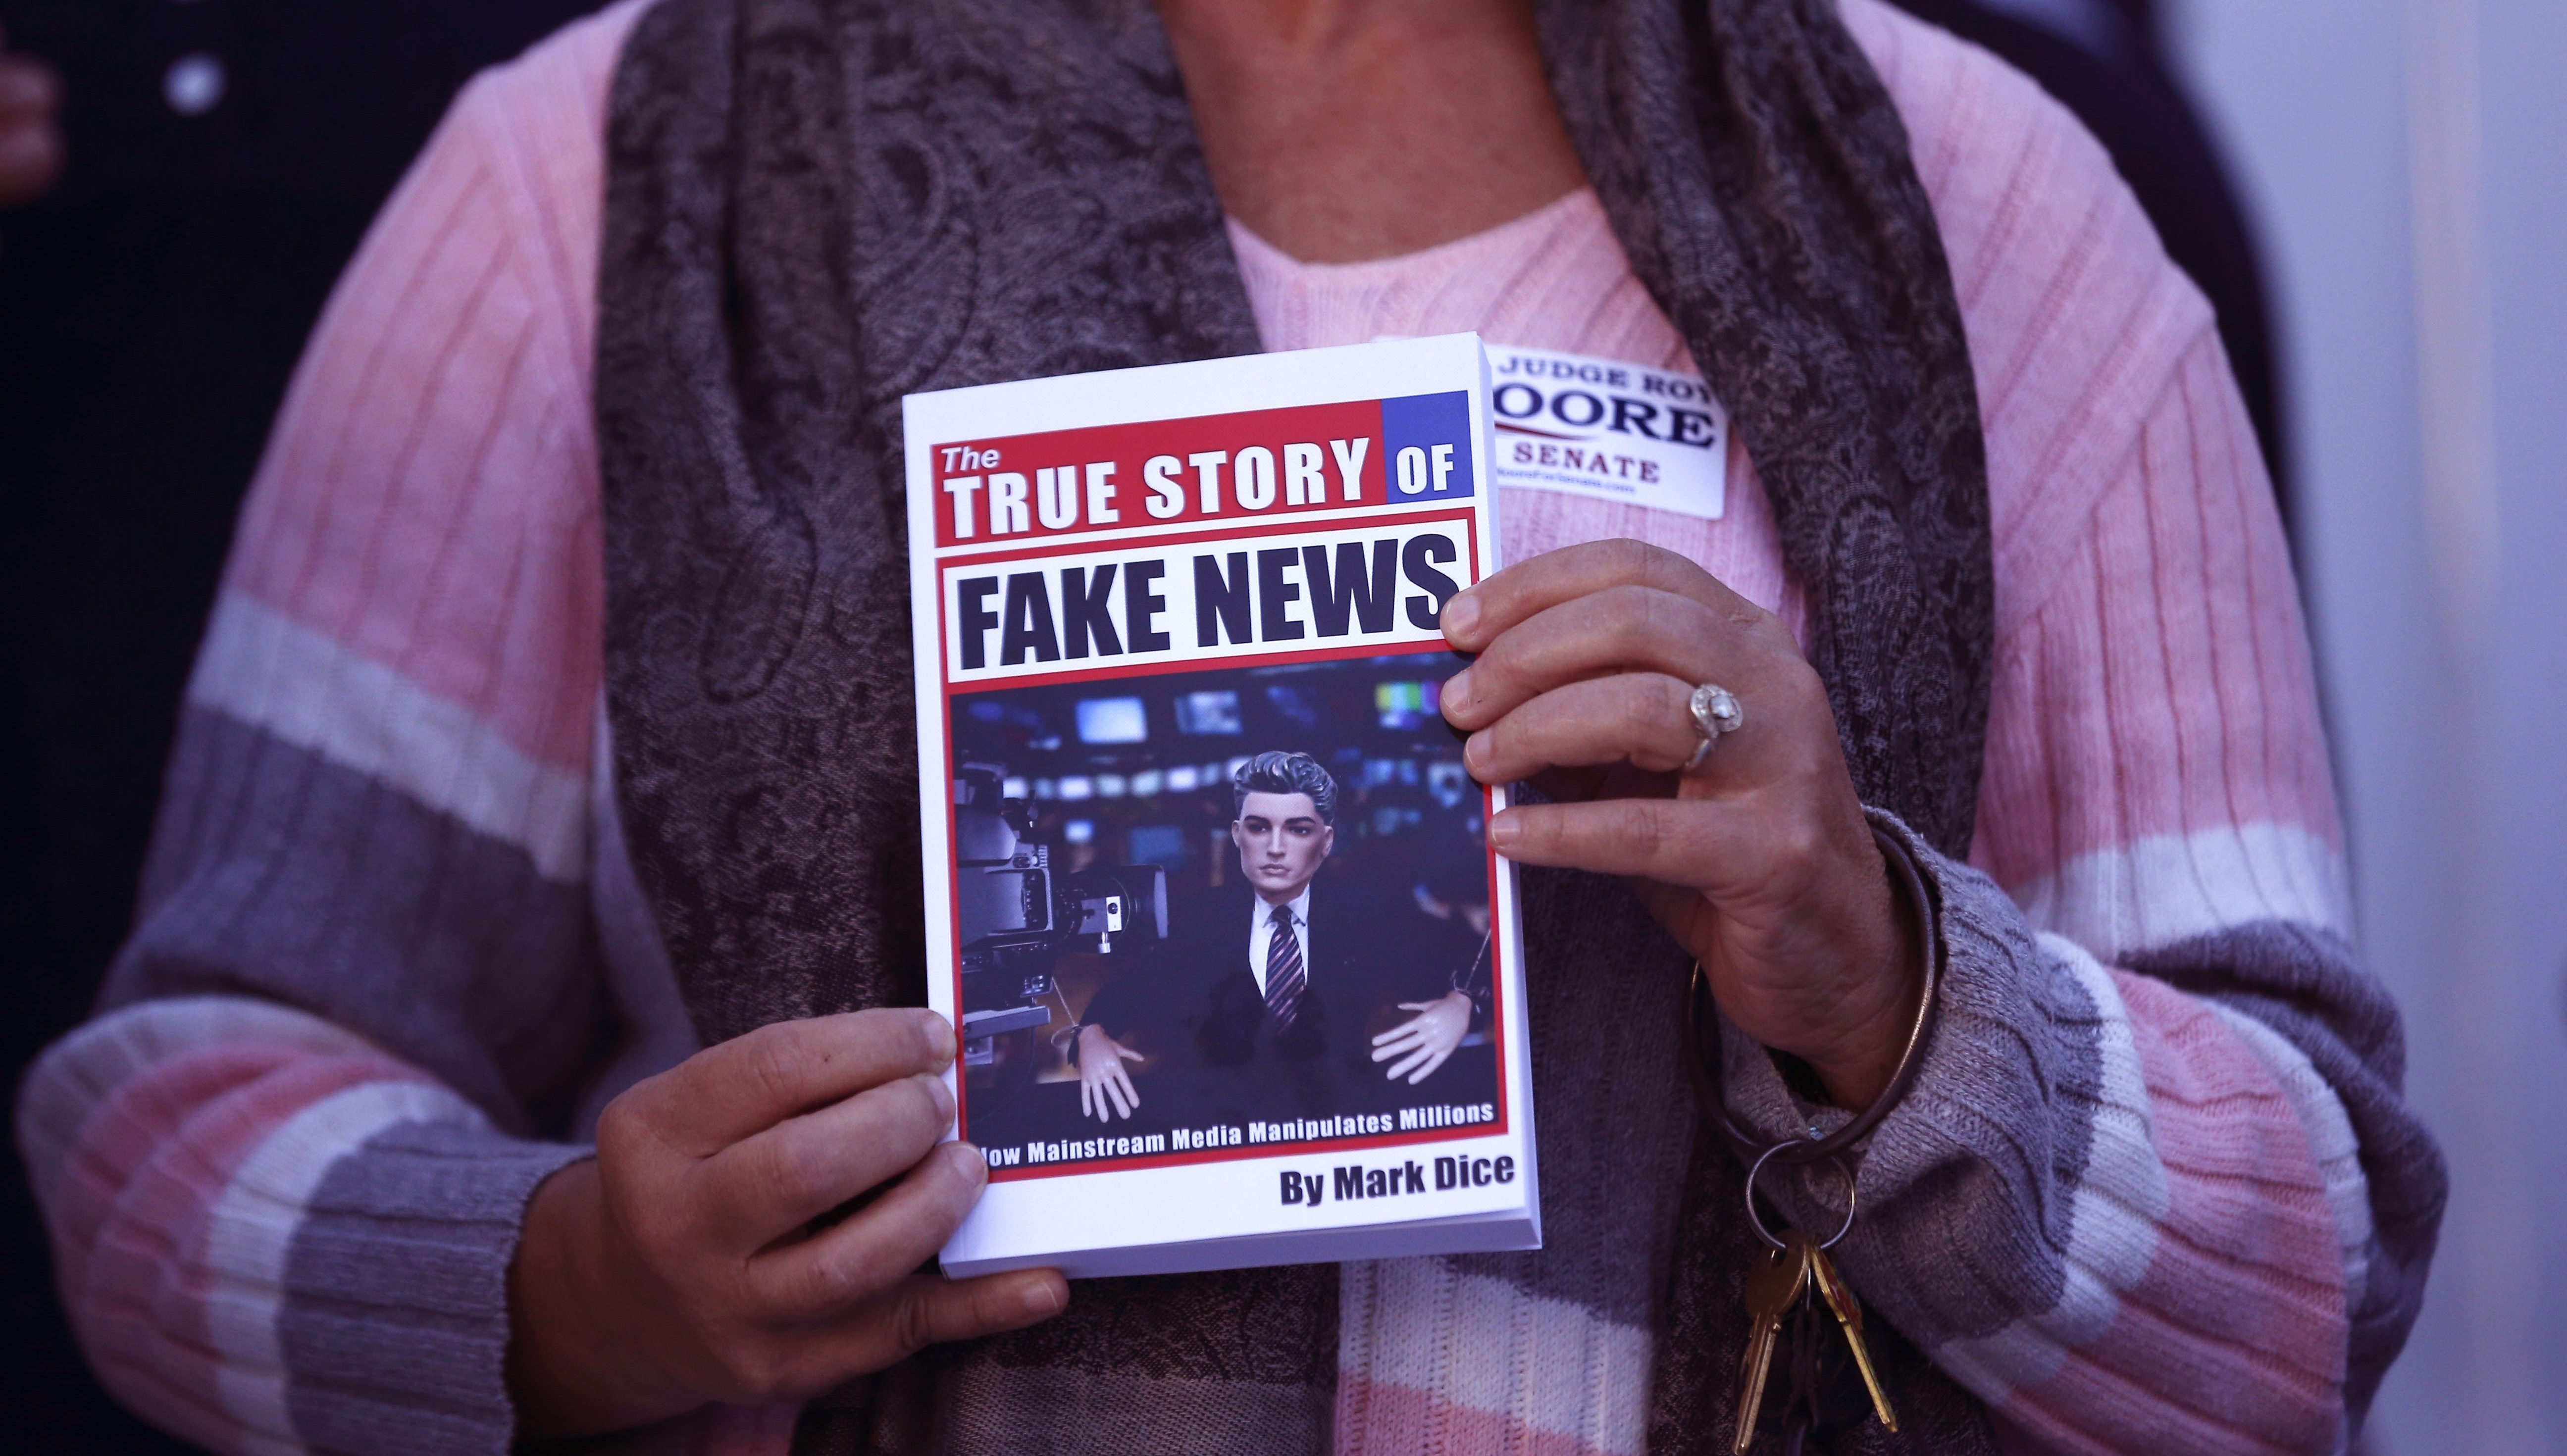 """FILE- In a Nov. 17, 2017 file photo, a supporter holds up a """"Fake News"""" book while Kayla Moore, wife of U.S. Senate candidate Roy Moore, speaks at a press conference in Montgomery, Ala. Would a story that seeks to unpack or drill down on a list of tiresome words and phrases be impactful or a nothingburger? Worse, would it just be tons of fake news? Well, dish all you want, but Northern Michigan's Lake Superior State University on Sunday released its 43rd annual List of Words Banished from the Queen's English for Misuse, Overuse and General Uselessness.(AP Photo/Brynn Anderson_File)"""